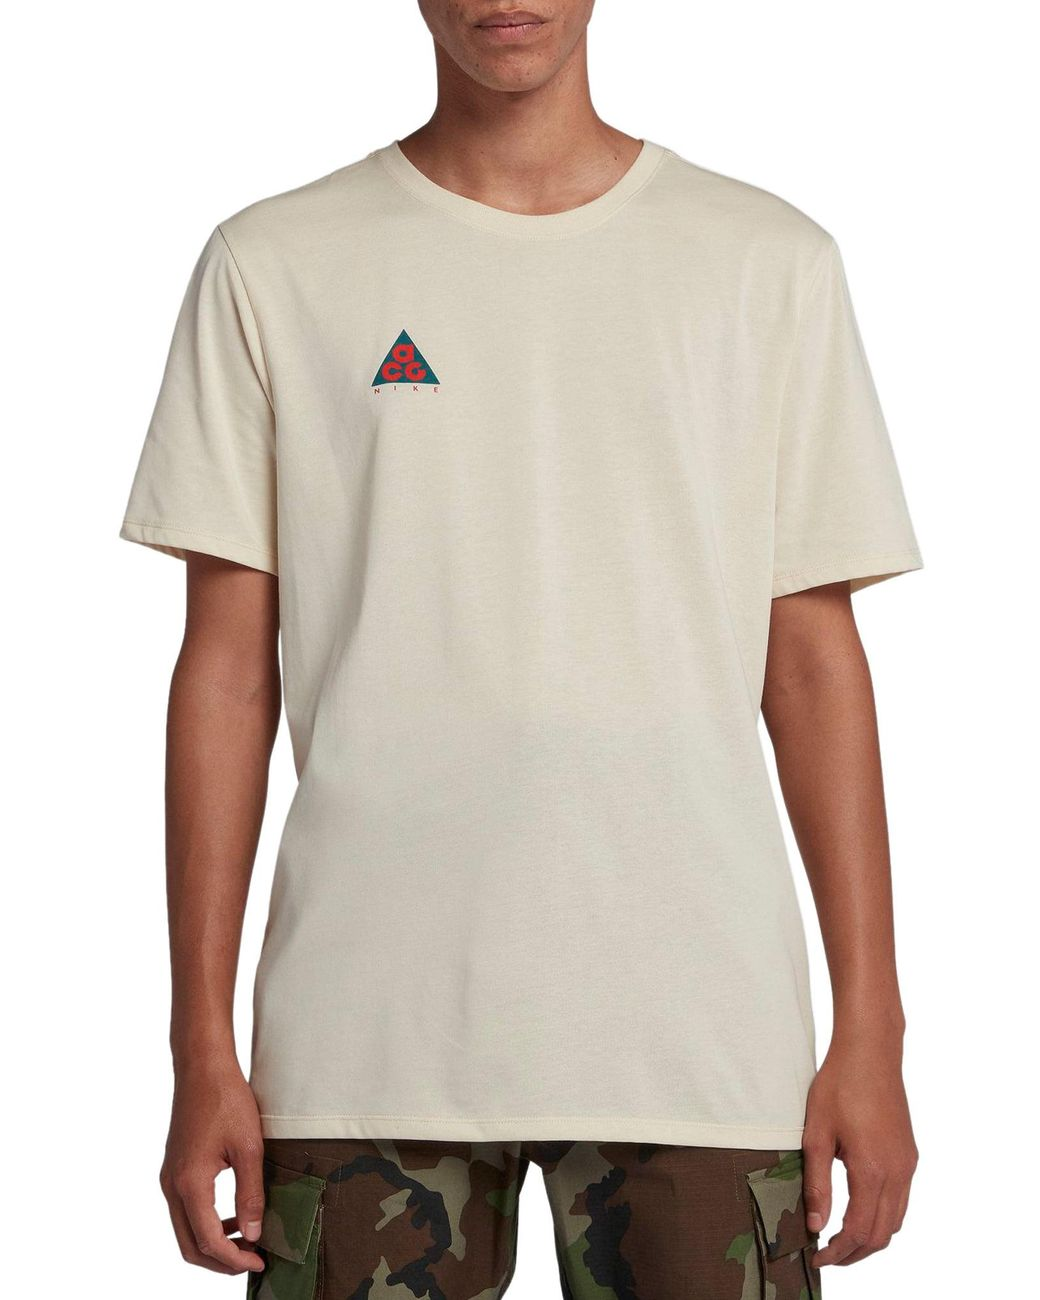 a31160196c76dc Lyst - Nike Sportswear Acg Graphic Tee in Natural for Men - Save 57%